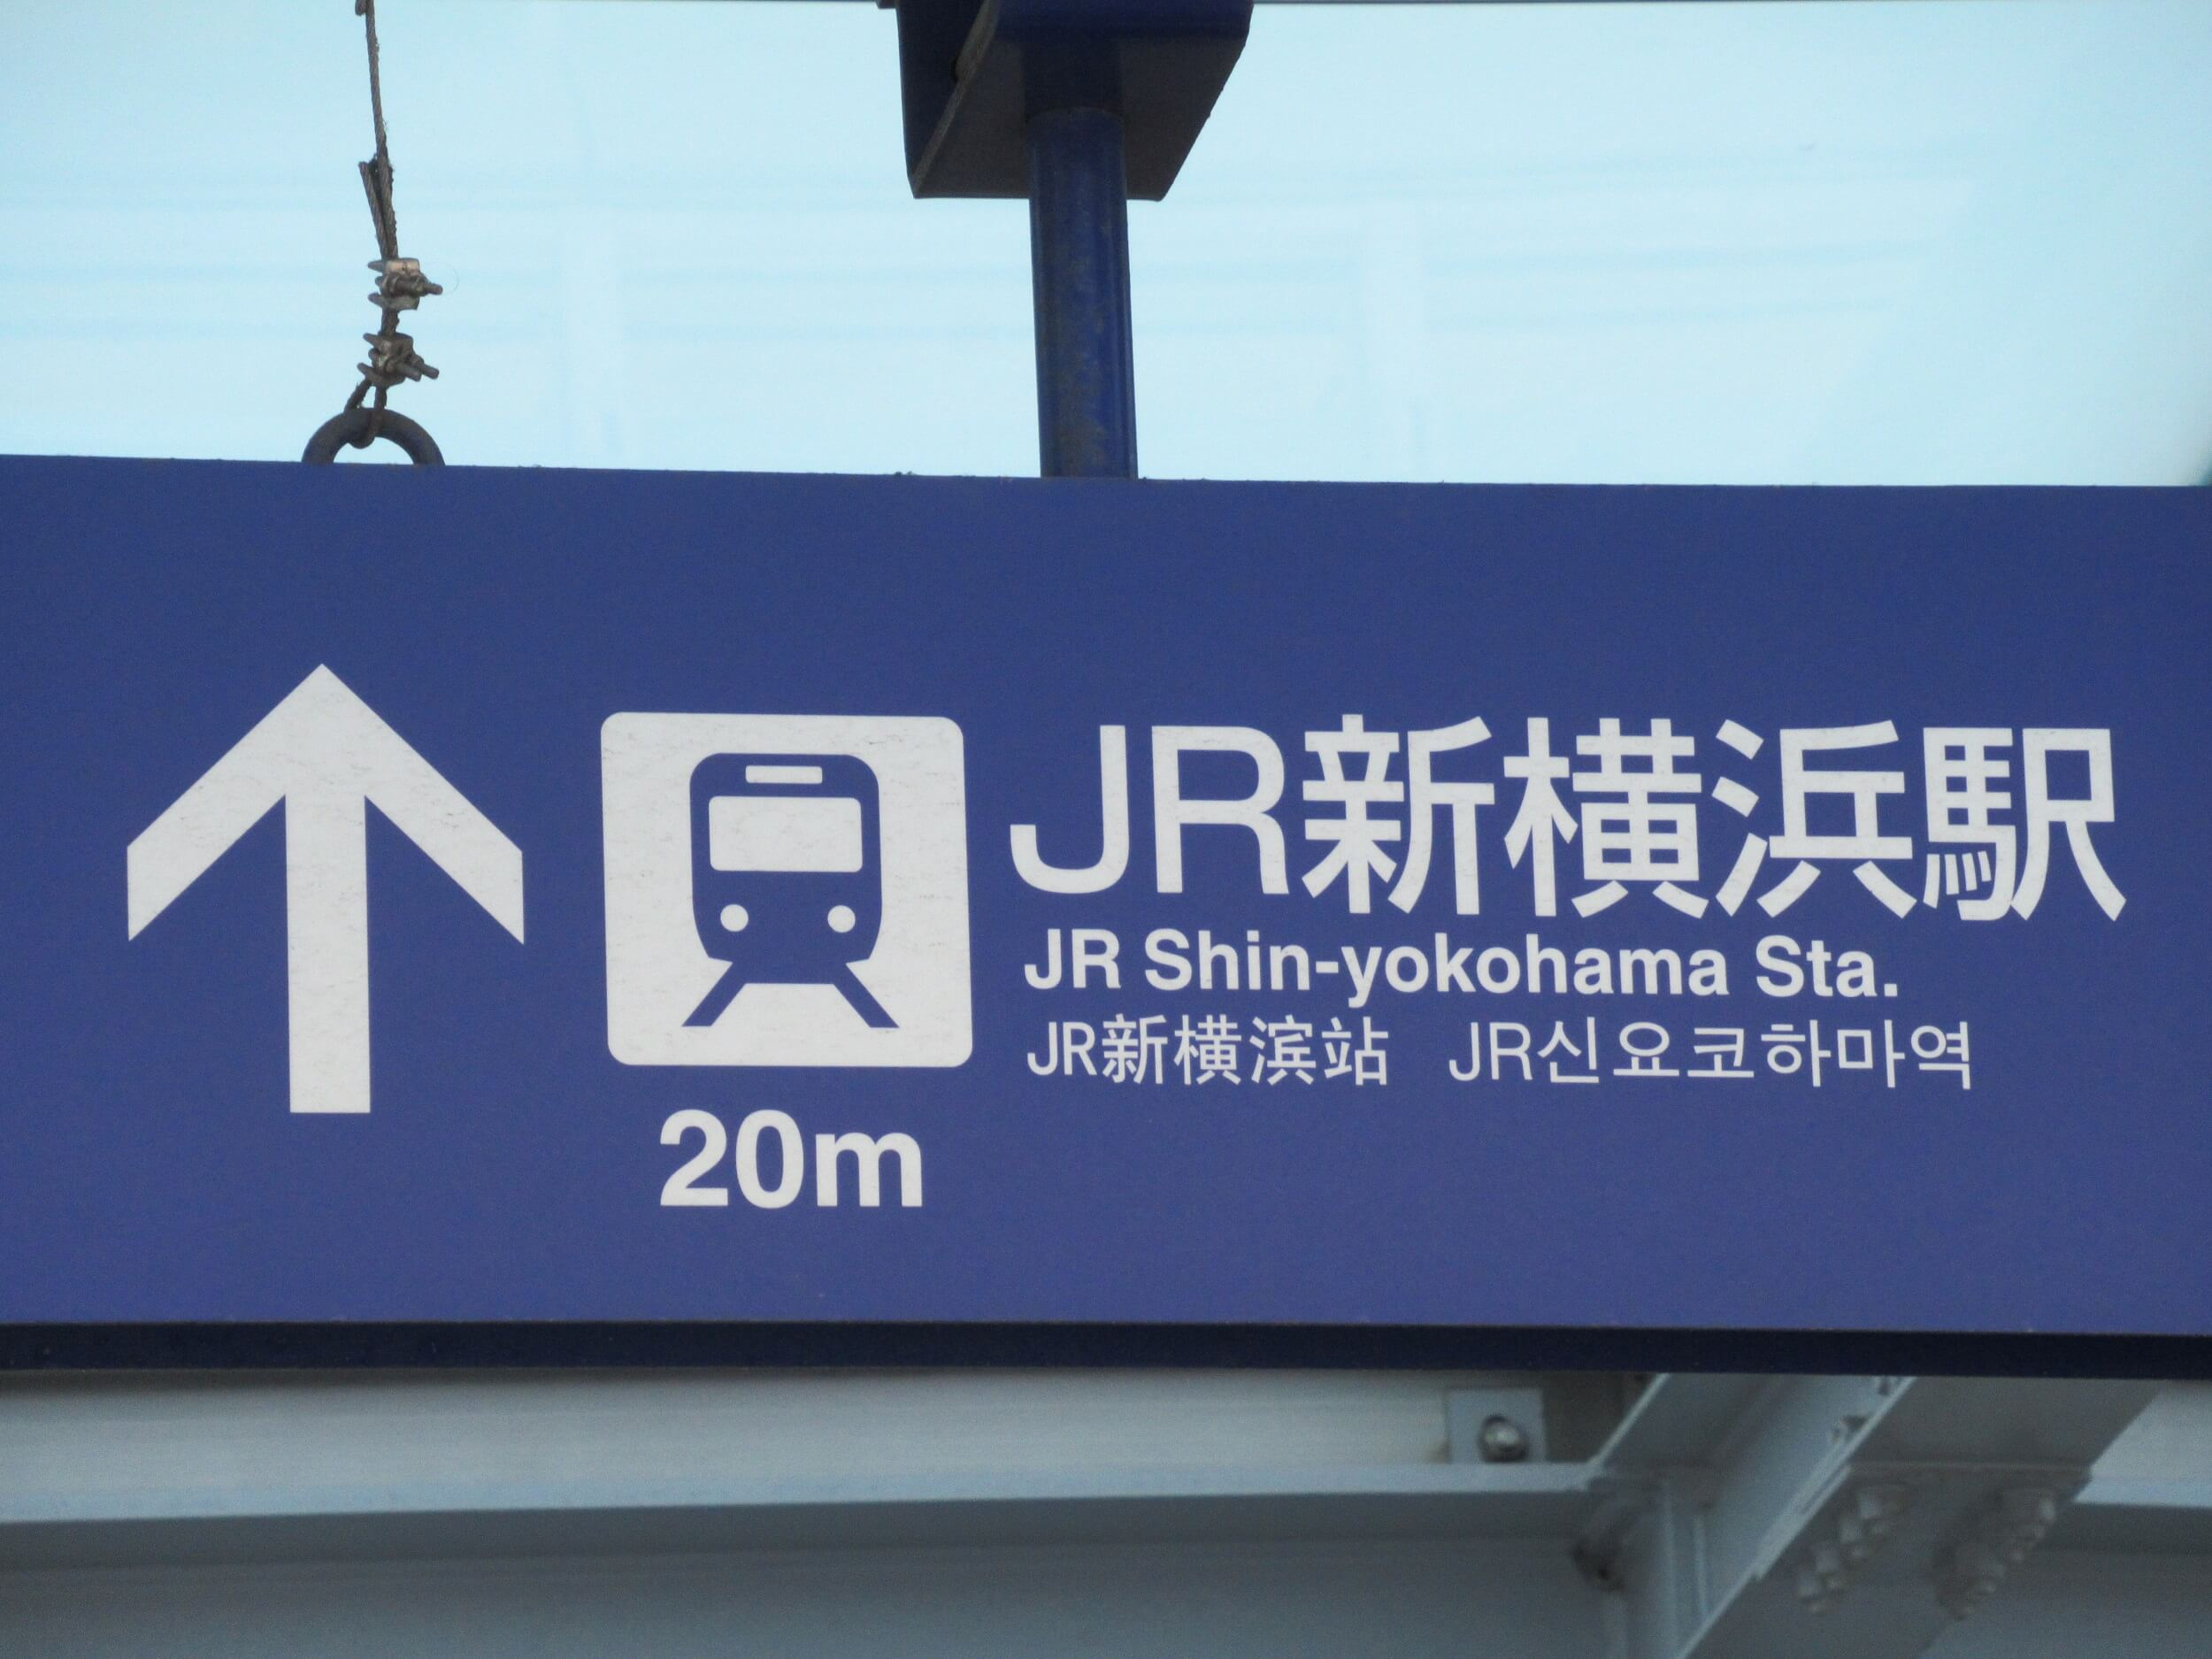 shinyokohama Station・Guide plate